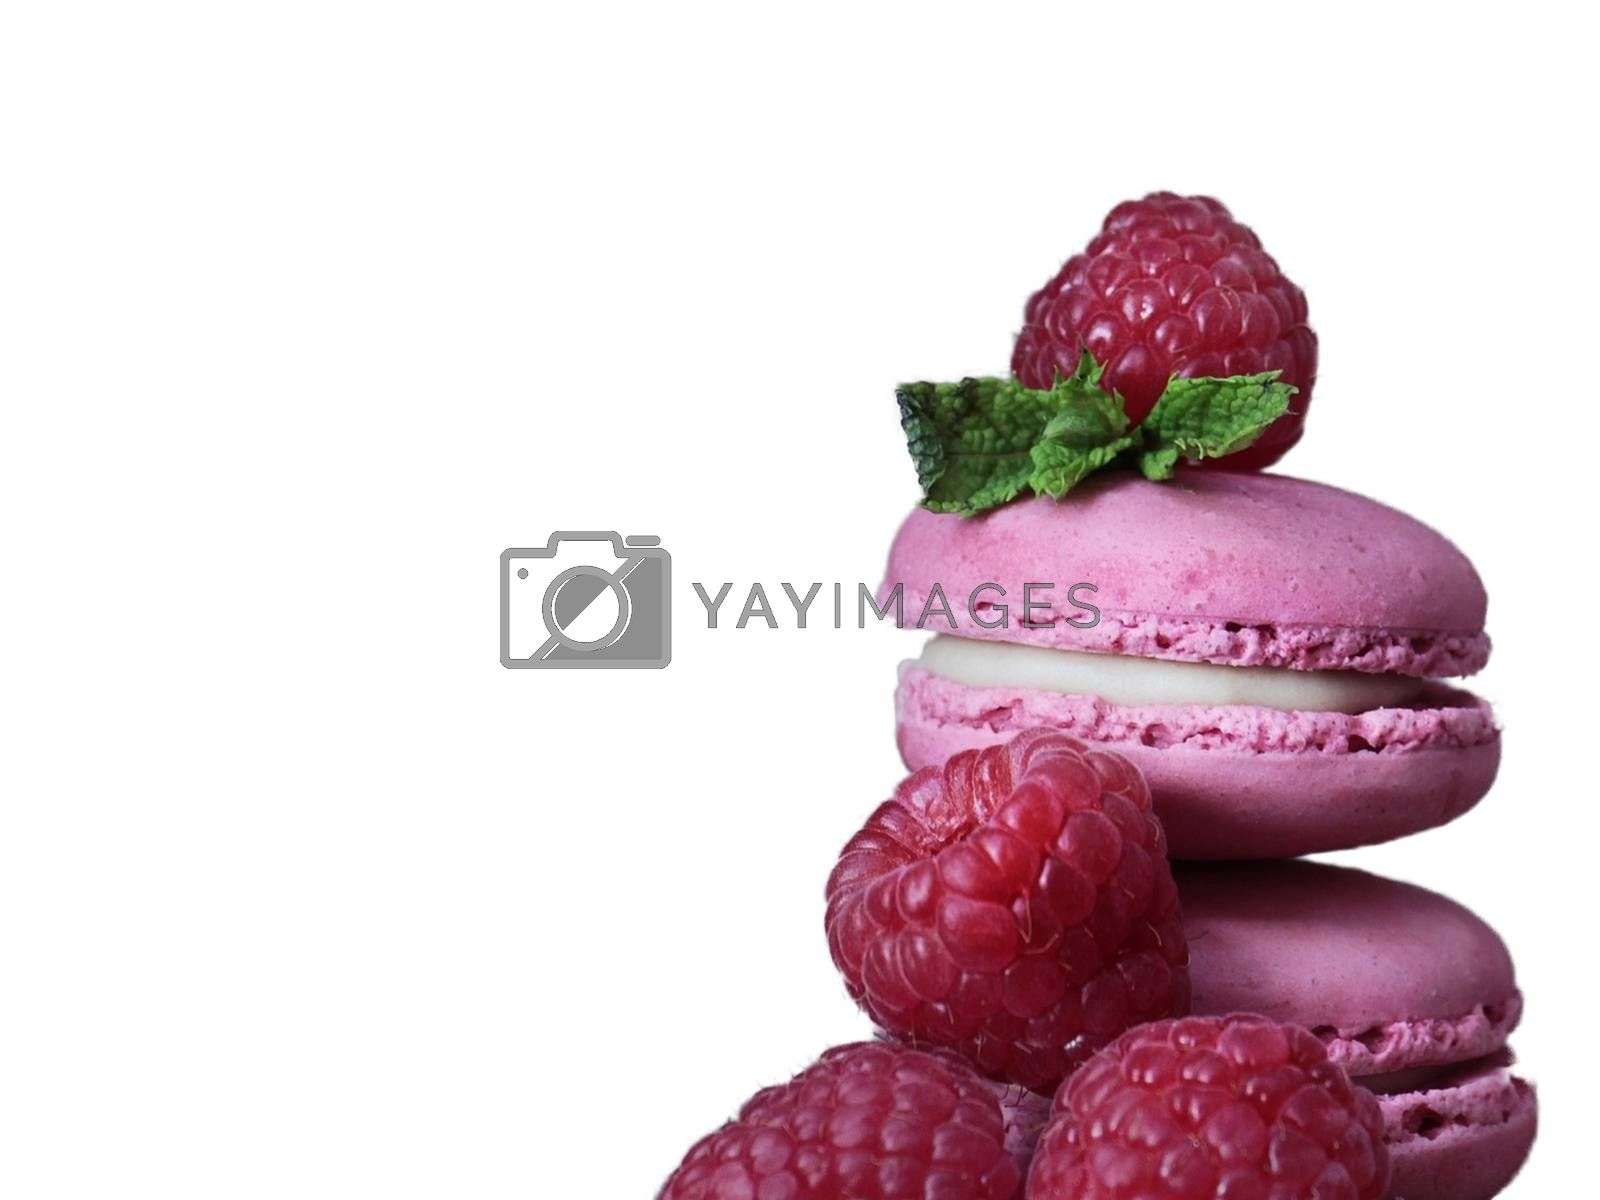 Royalty free image of Raspberry macaron with raspberry pieces on a white background by balage941